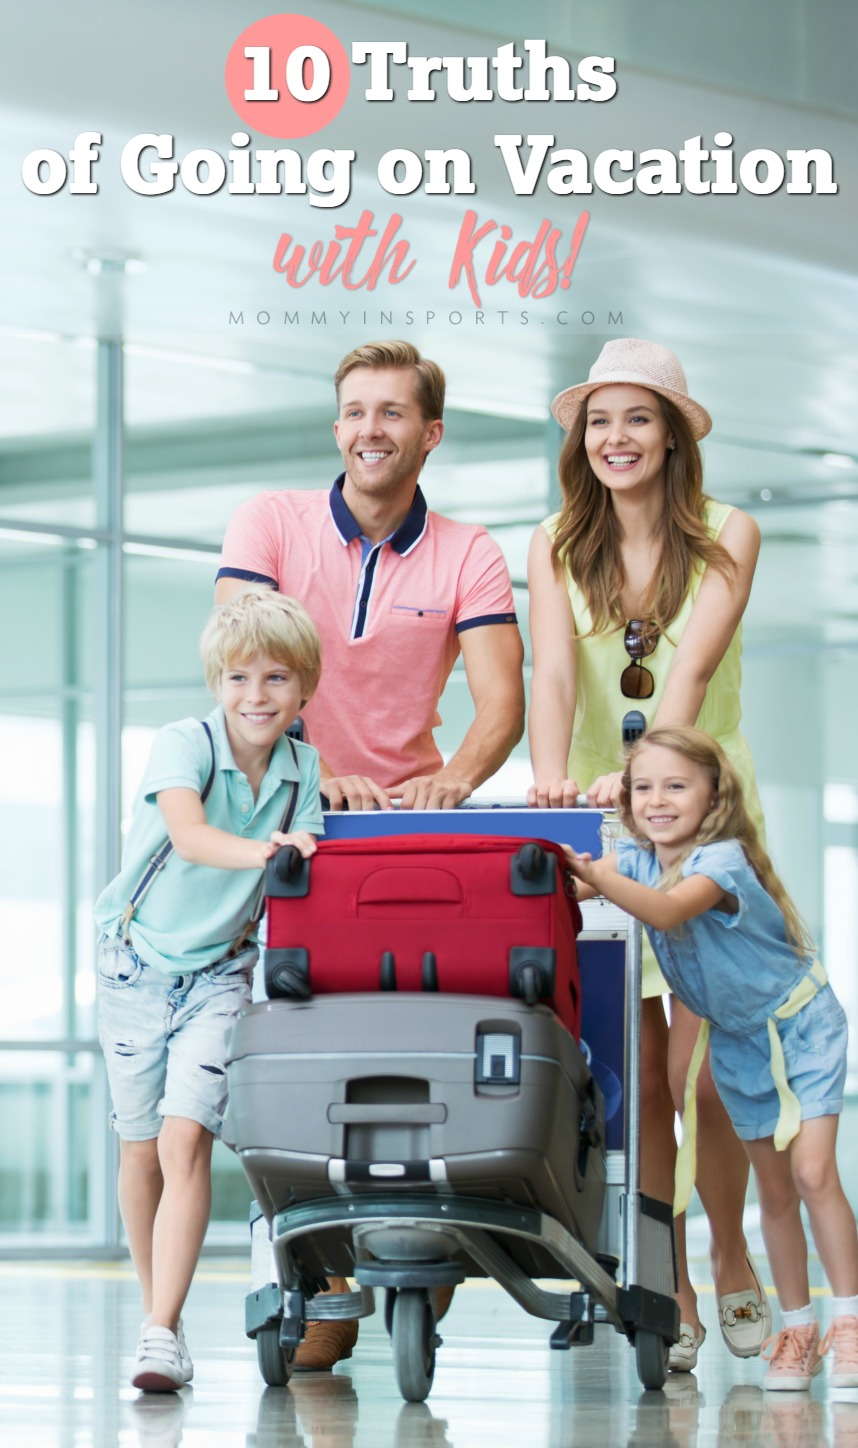 Planning that next summer adventure or holiday getaway? Before you go, a gentle reminder of the 10 Truths of Going on Vacation with Kids!